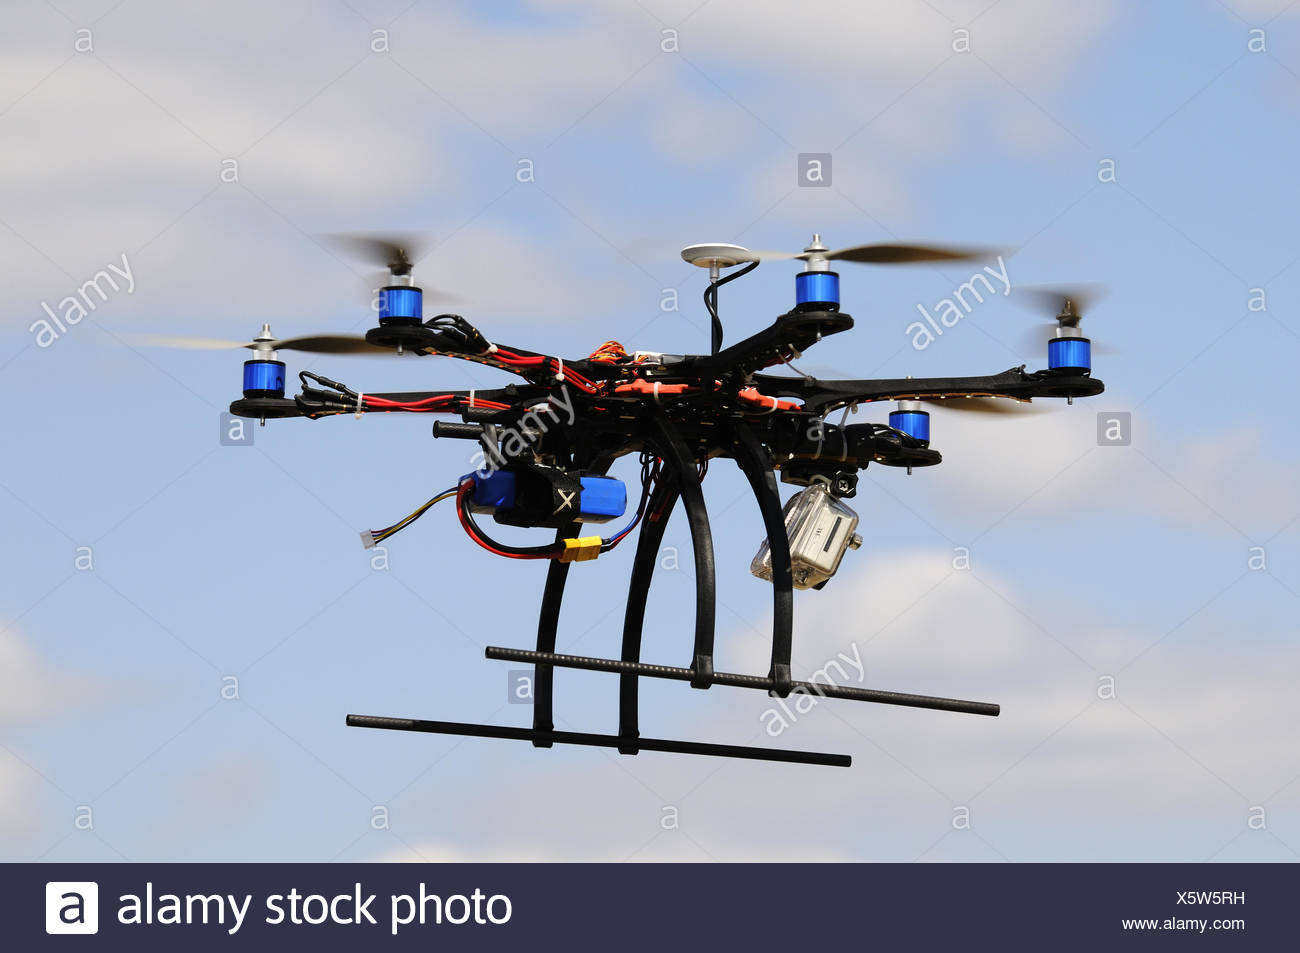 Hexacopter aircraft model in flight over blurry blue sky - Stock Image